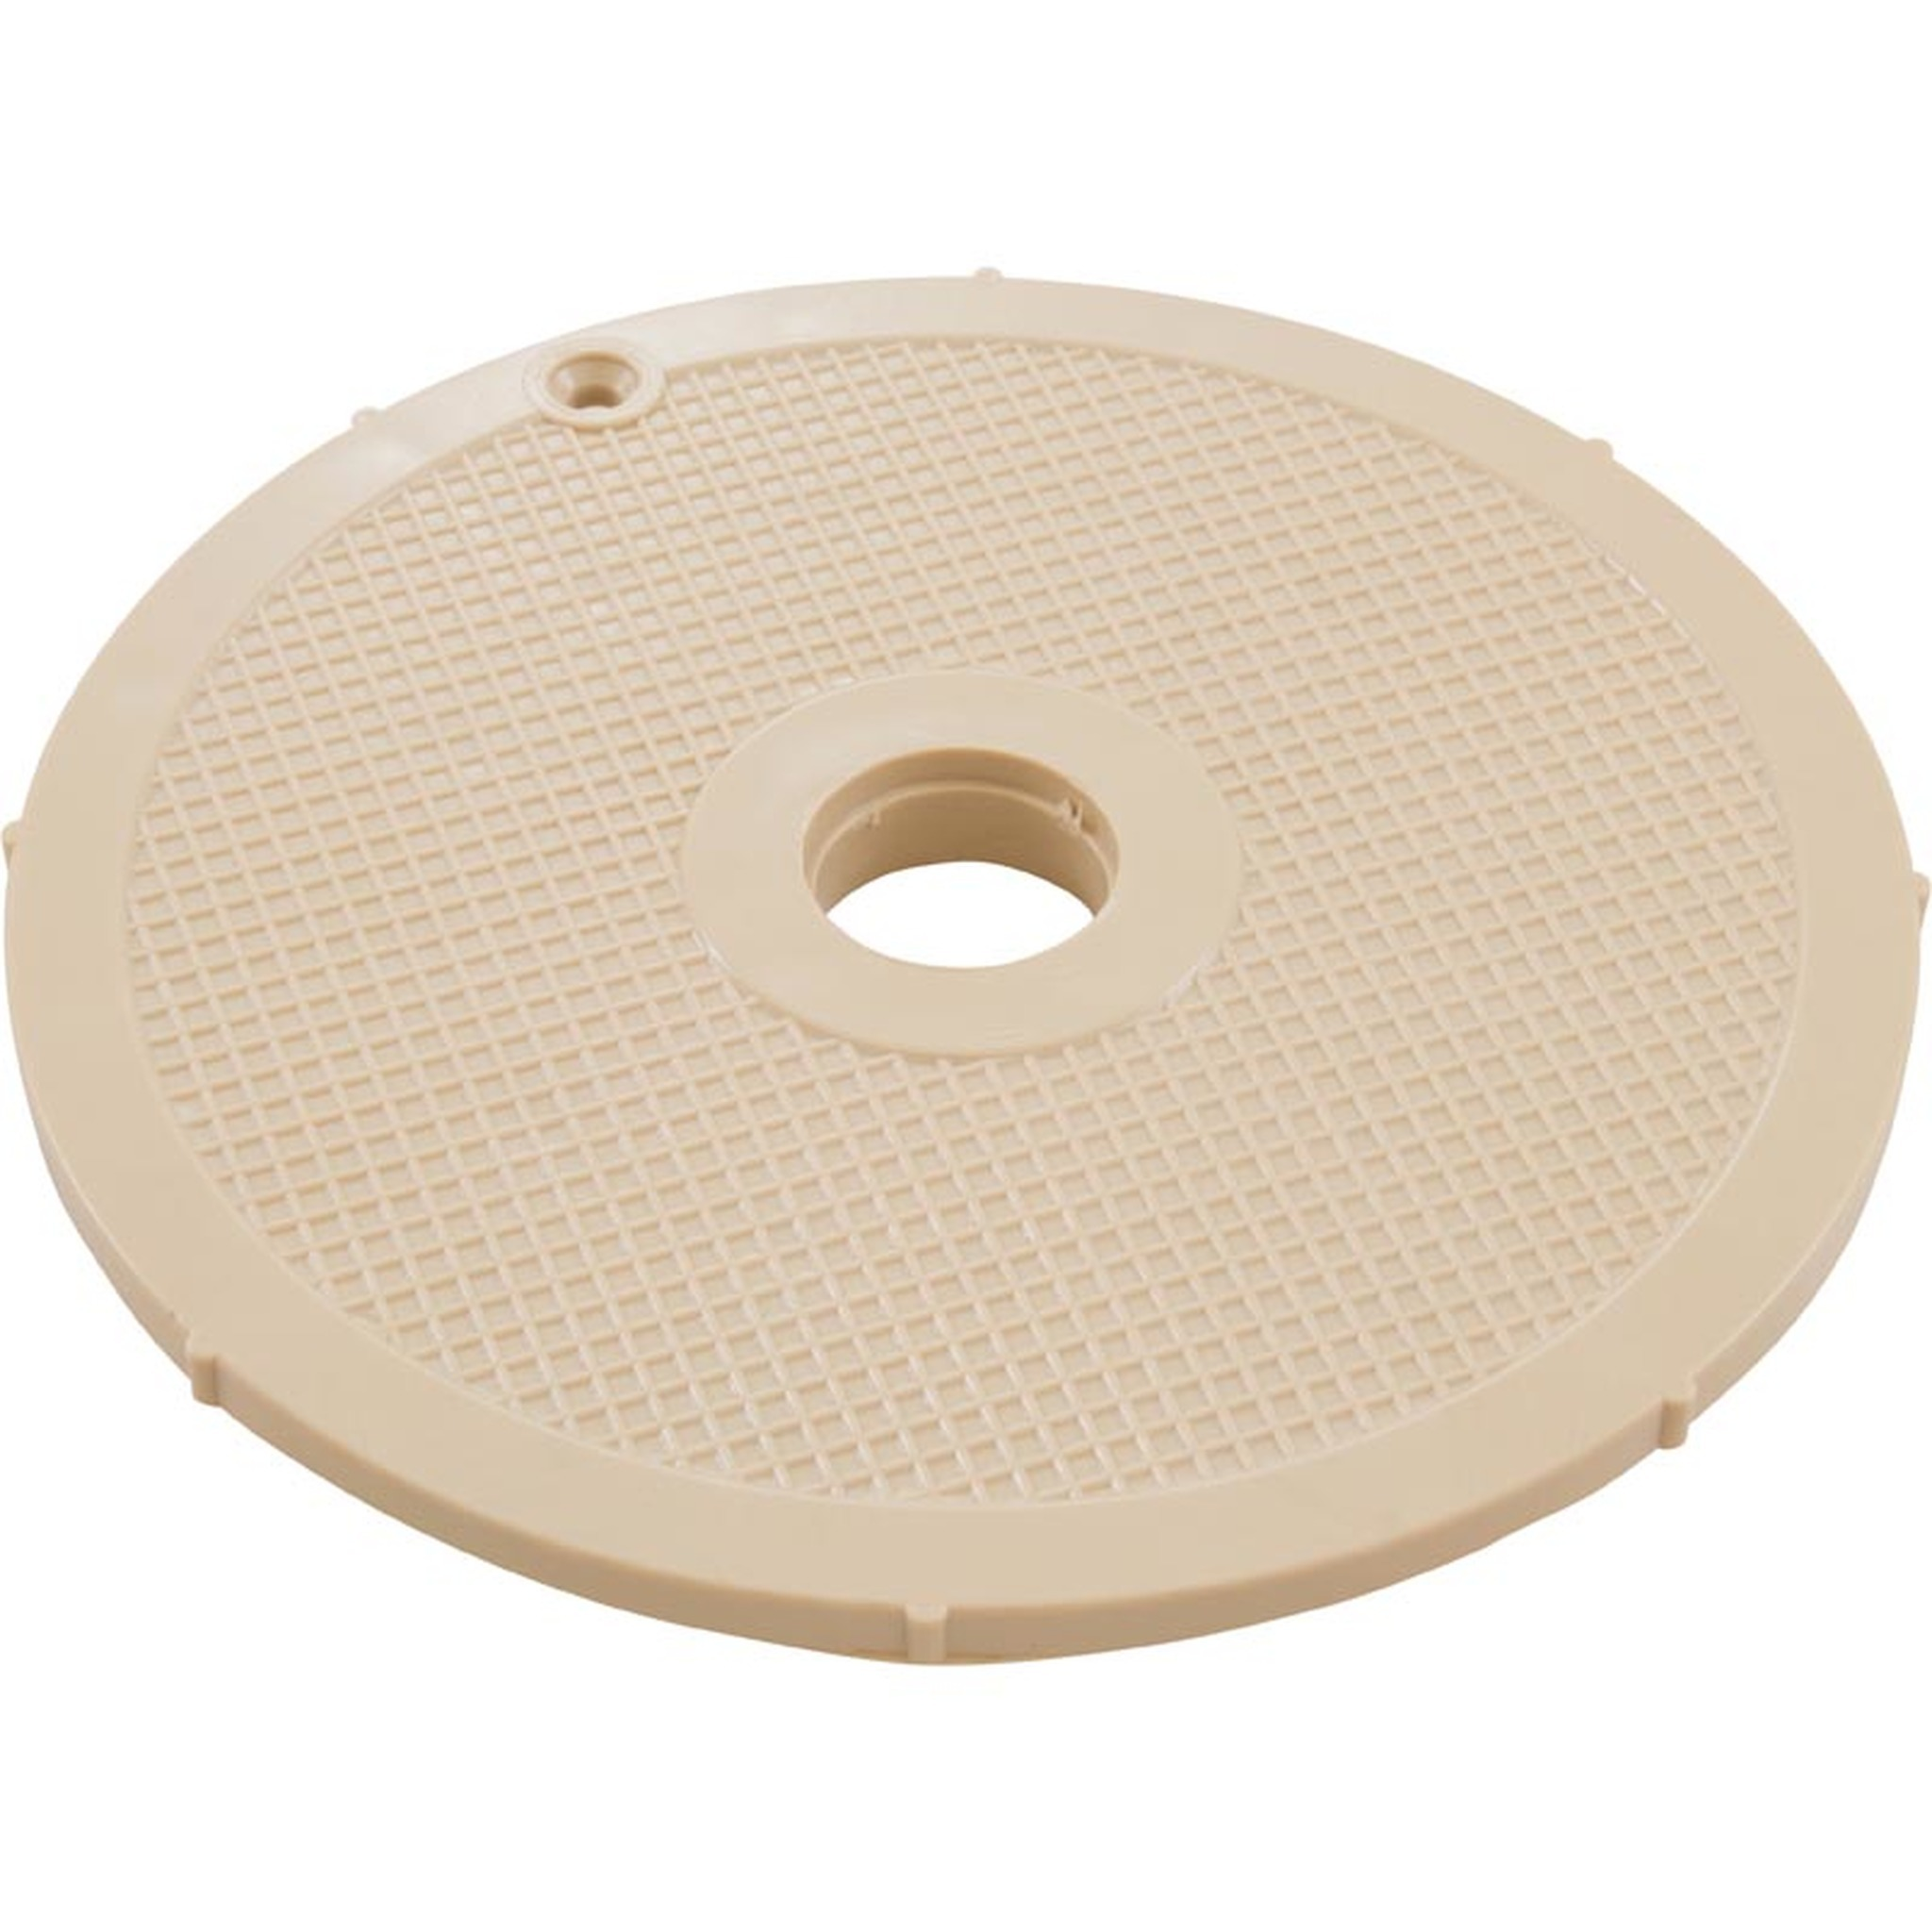 Skimmer Deck Lids & Covers